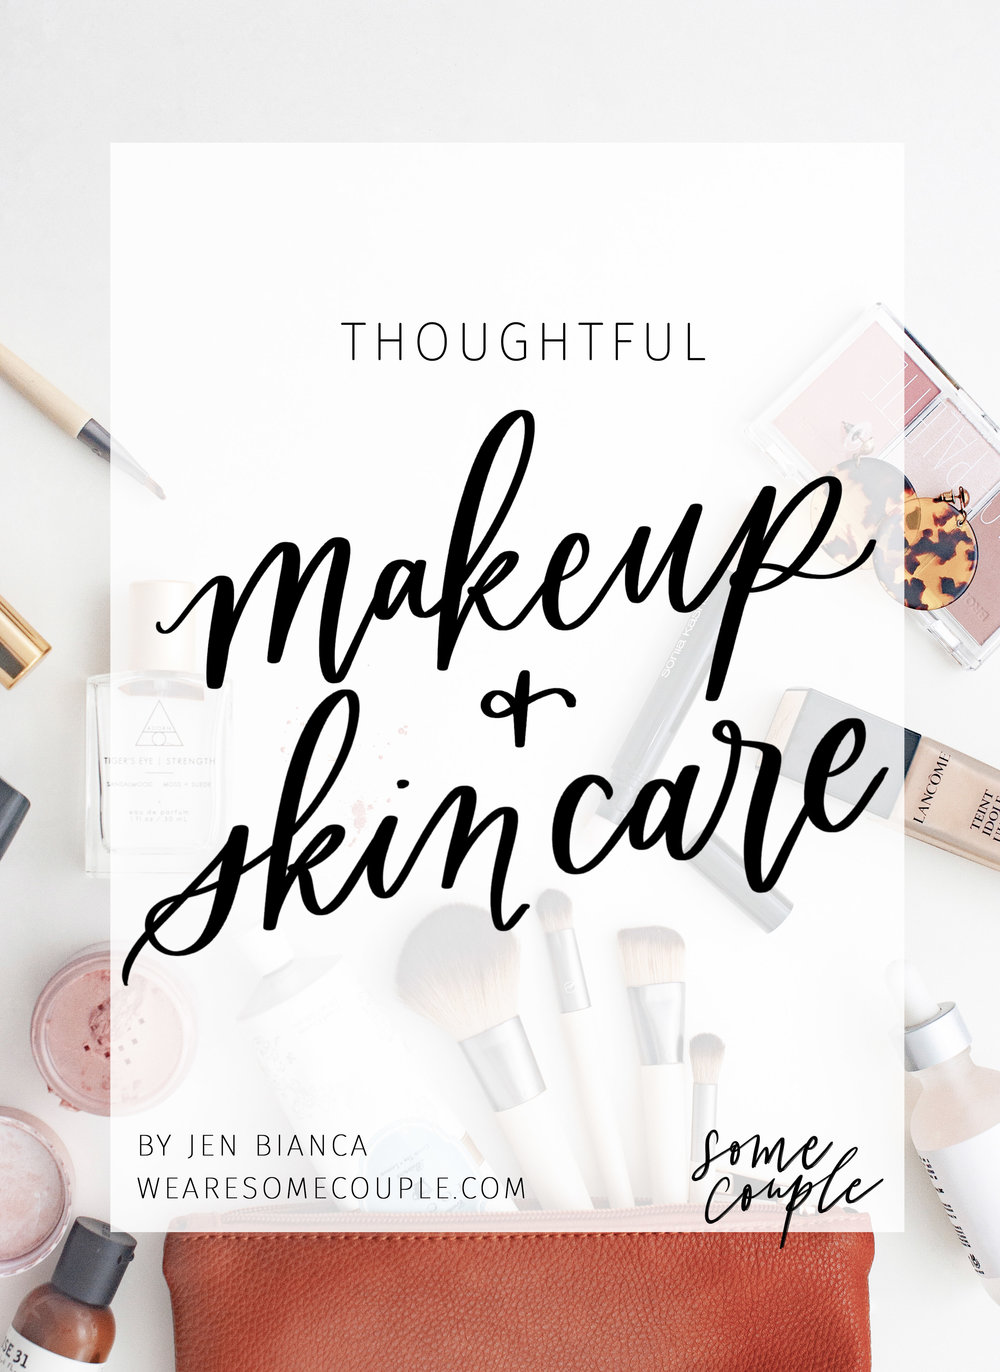 Thoughtful makeup and skincare by jenniferbianca.com